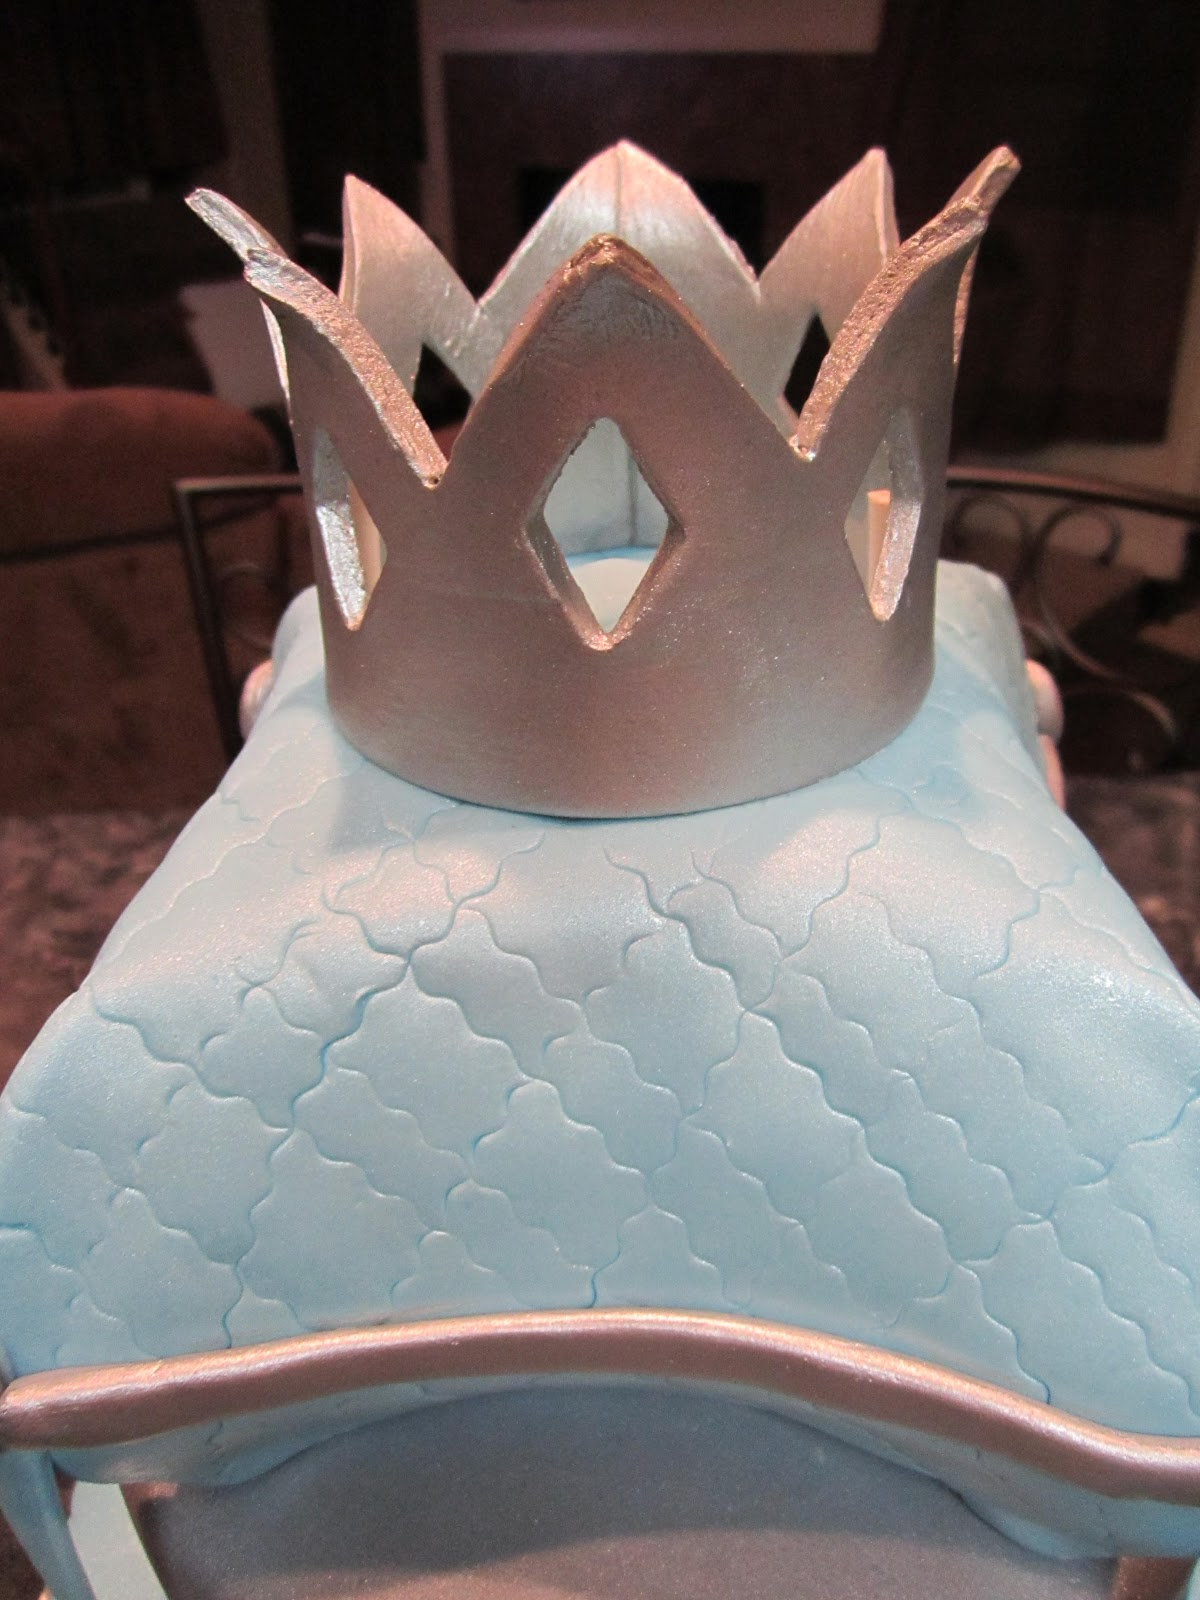 MyMoniCakes Little Prince Baby Shower Cake with Pillow and Crown